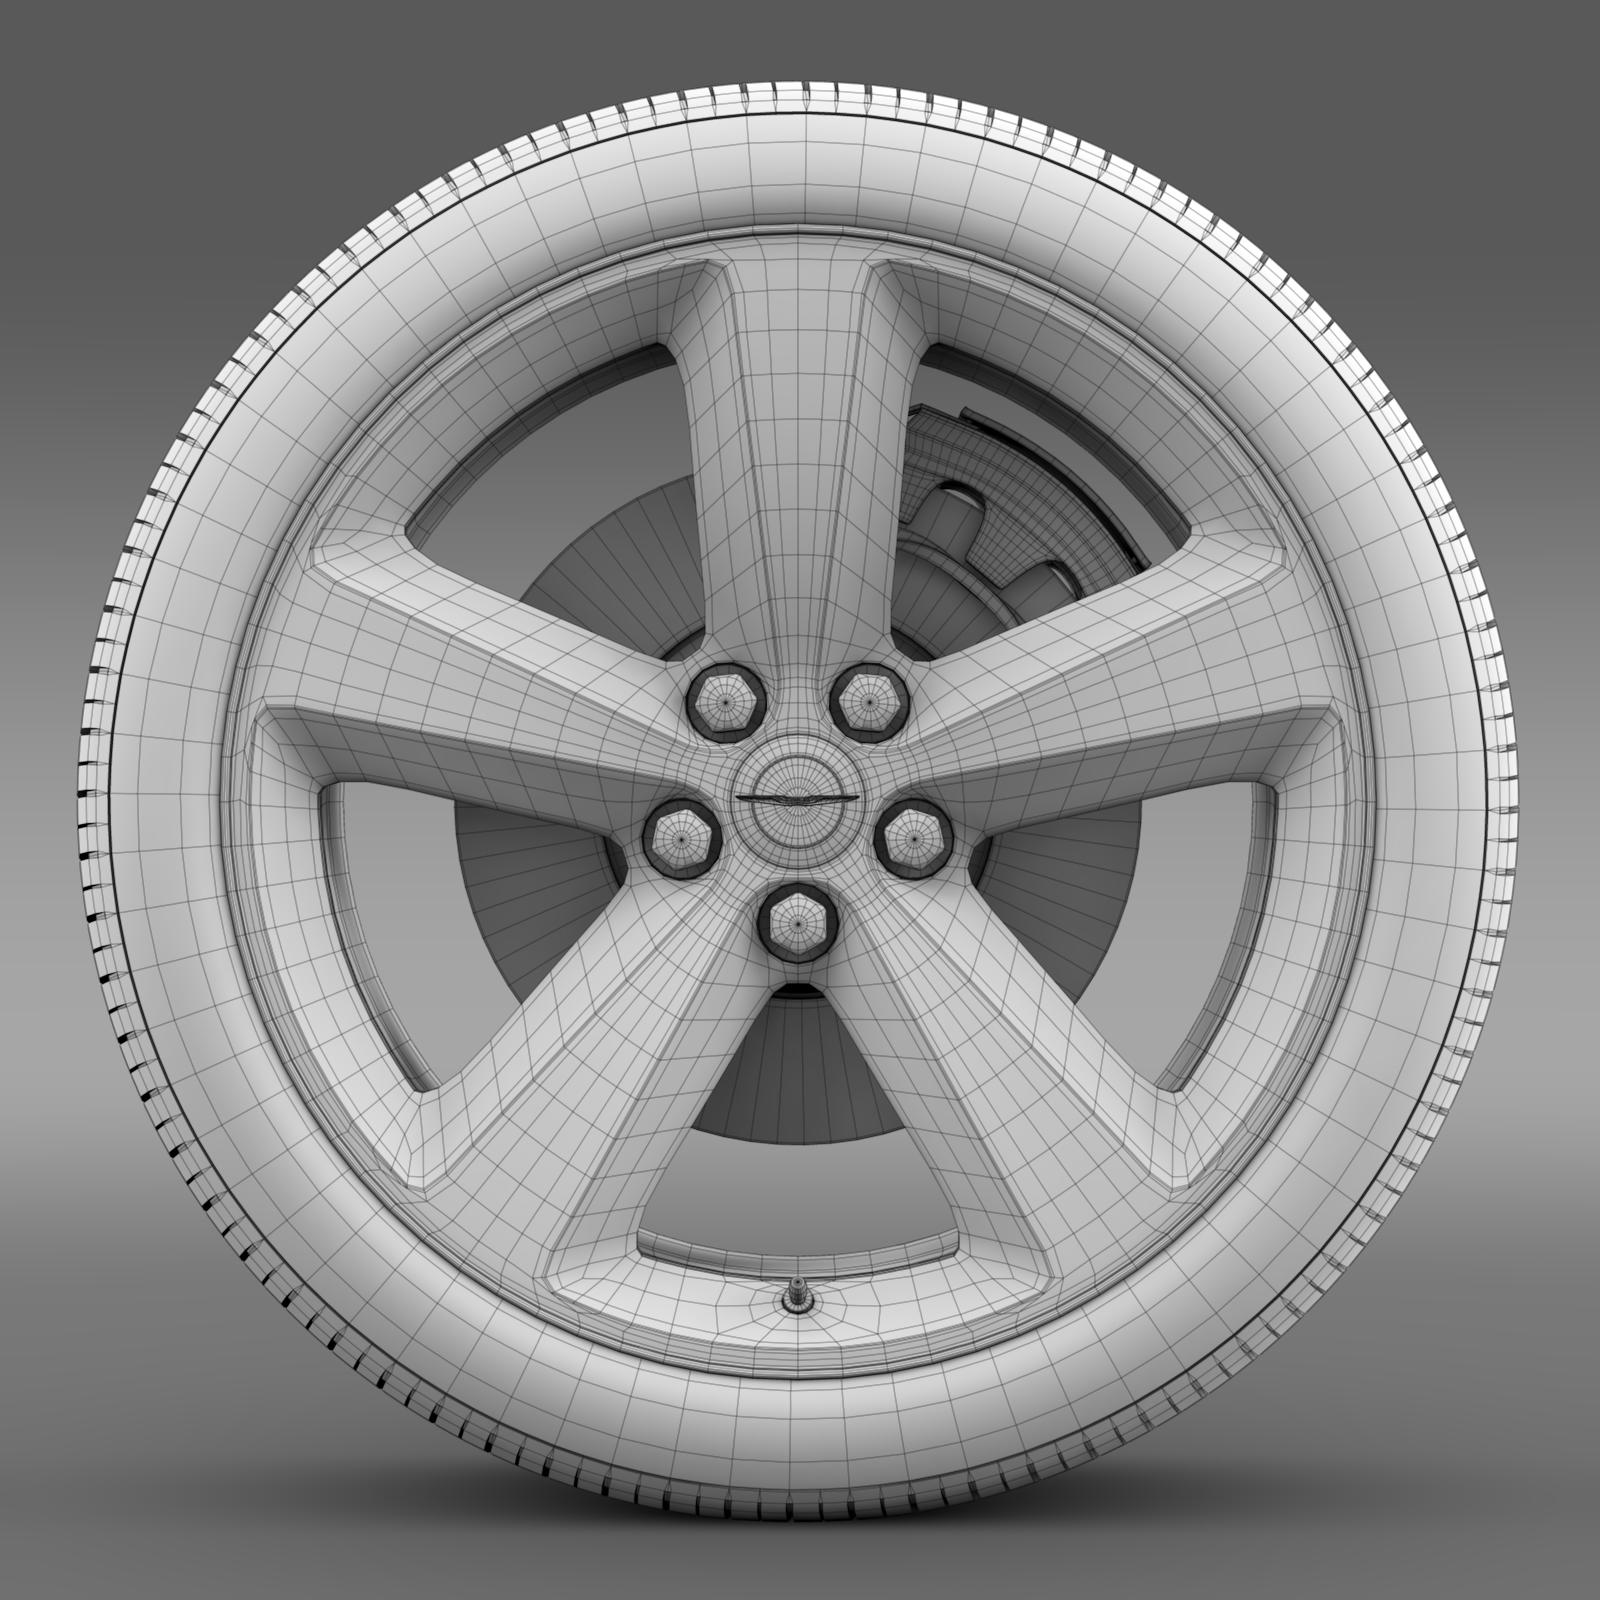 chrysler 300s wheel 3d model 3ds max fbx c4d lwo ma mb hrc xsi obj 210677